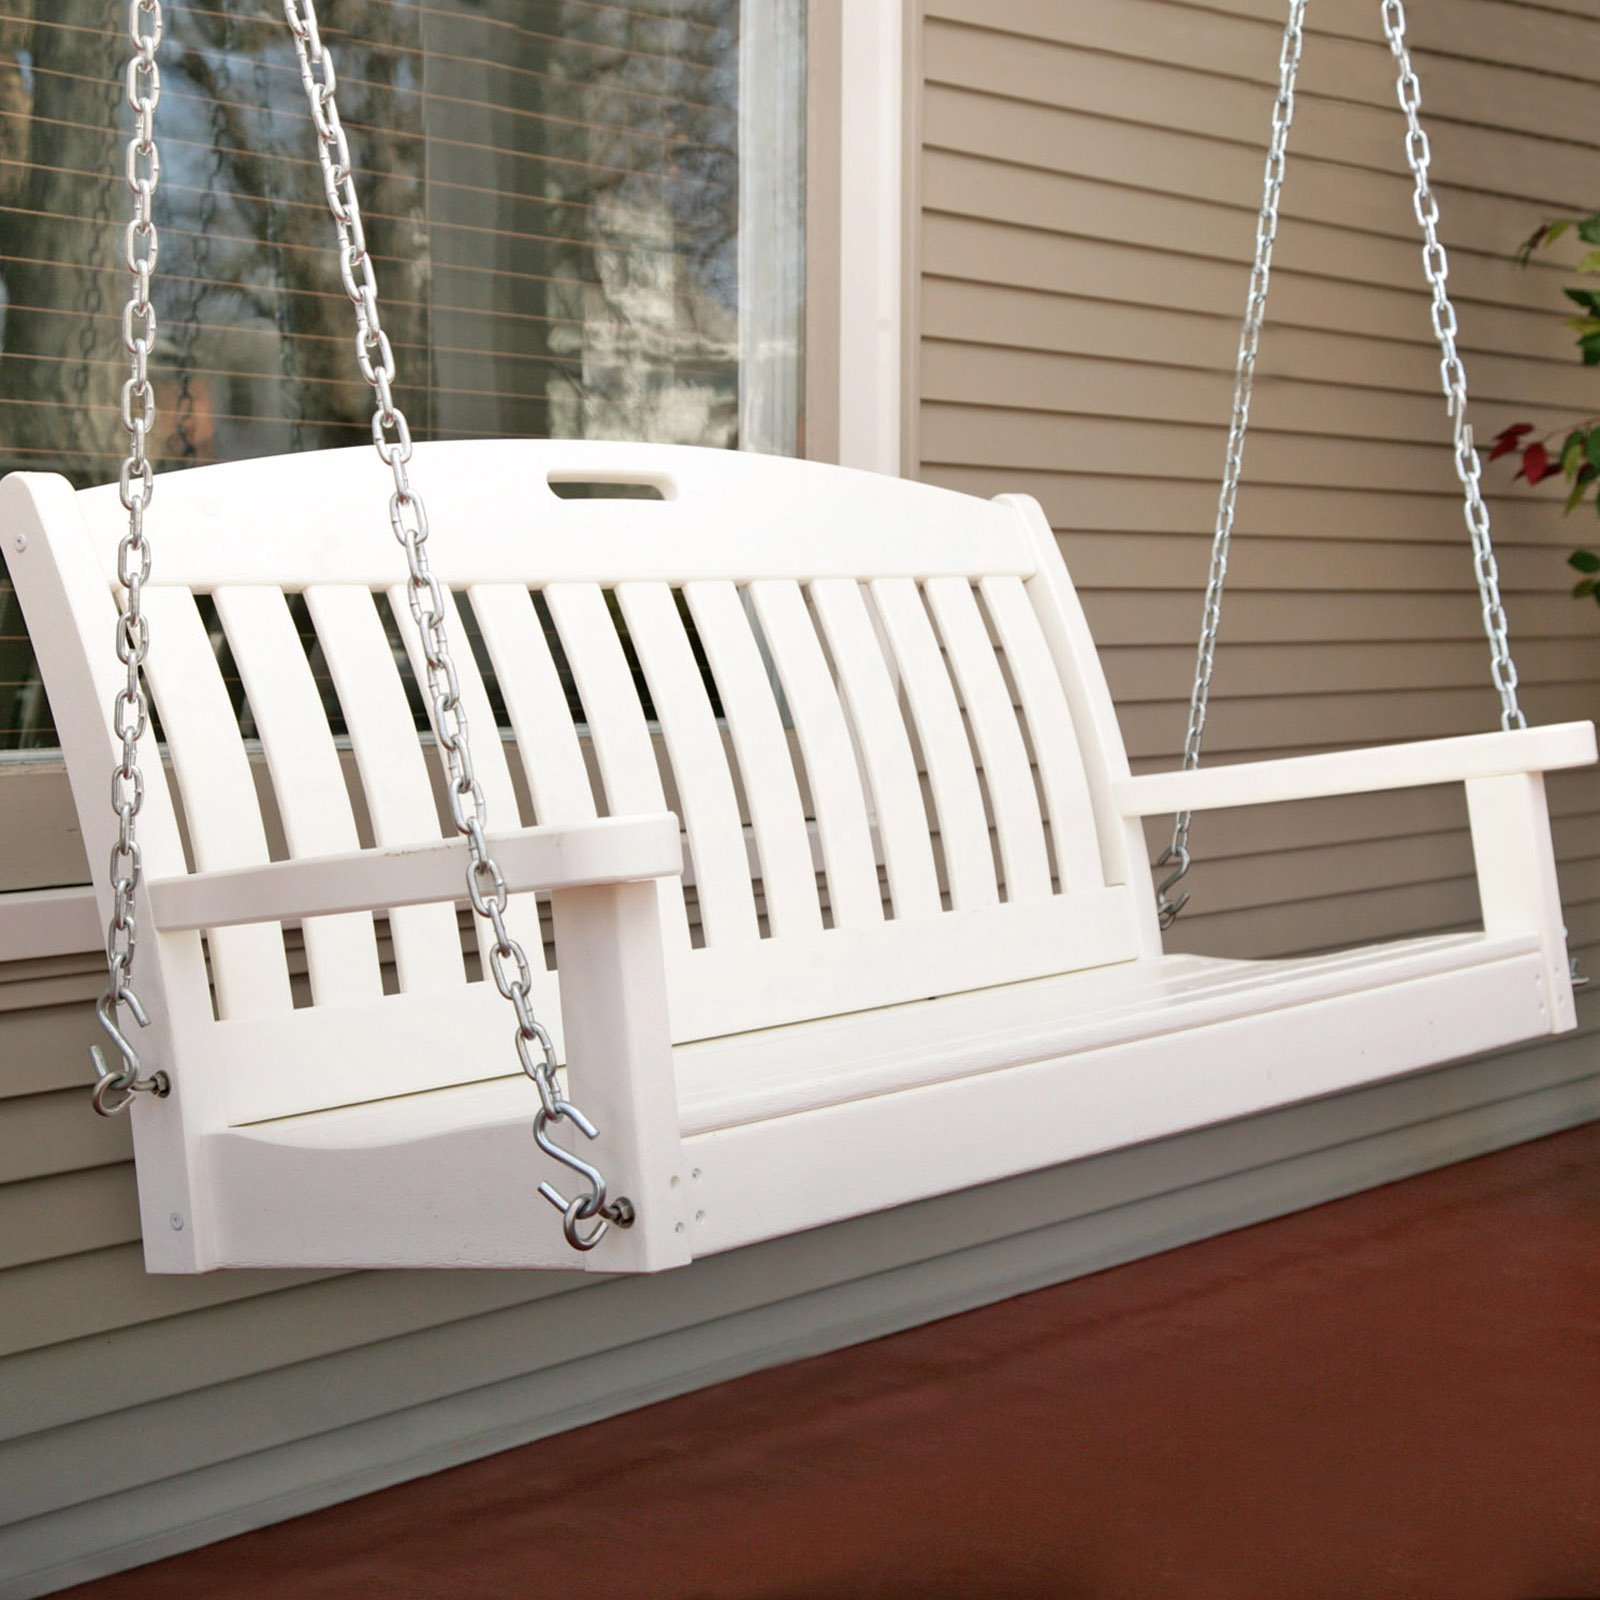 POLYWOOD® Nautical 4 ft. Recycled Plastic Porch Swing - White